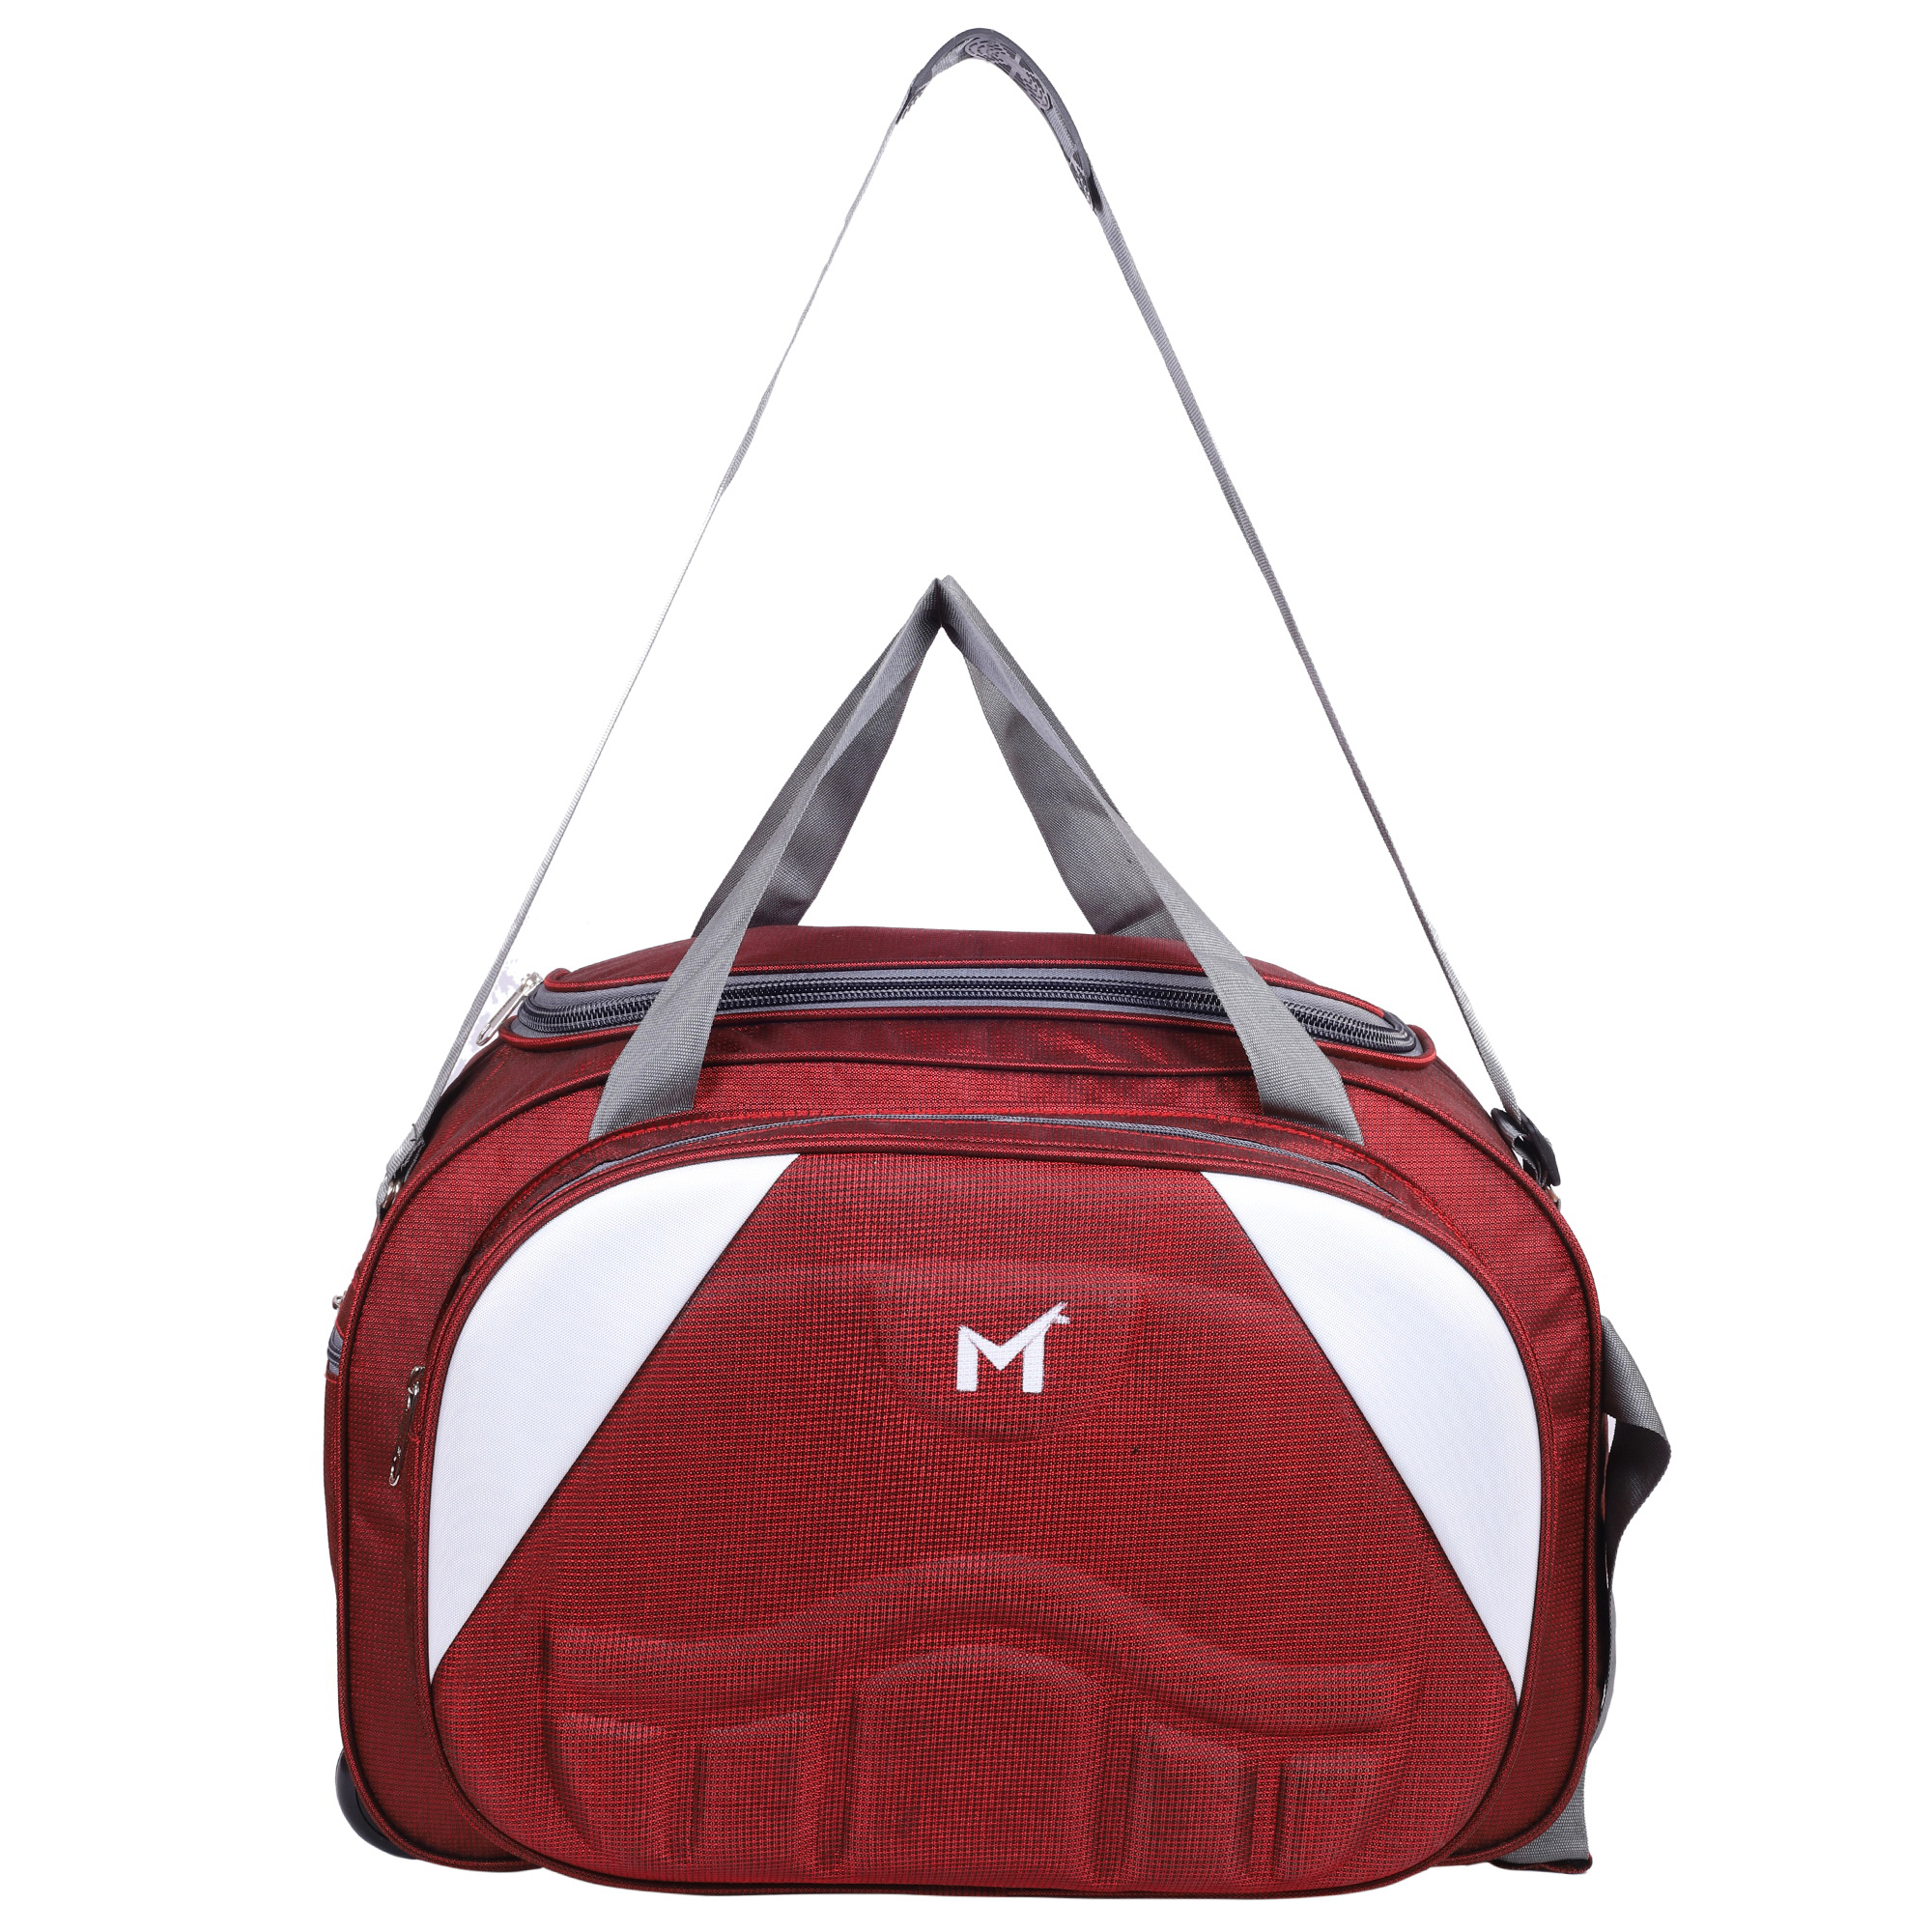 SMS BAG HOUSE  Expandable  Unisex Lightweight 55 litres Travel Duffel Bag with Two Wheels   Red